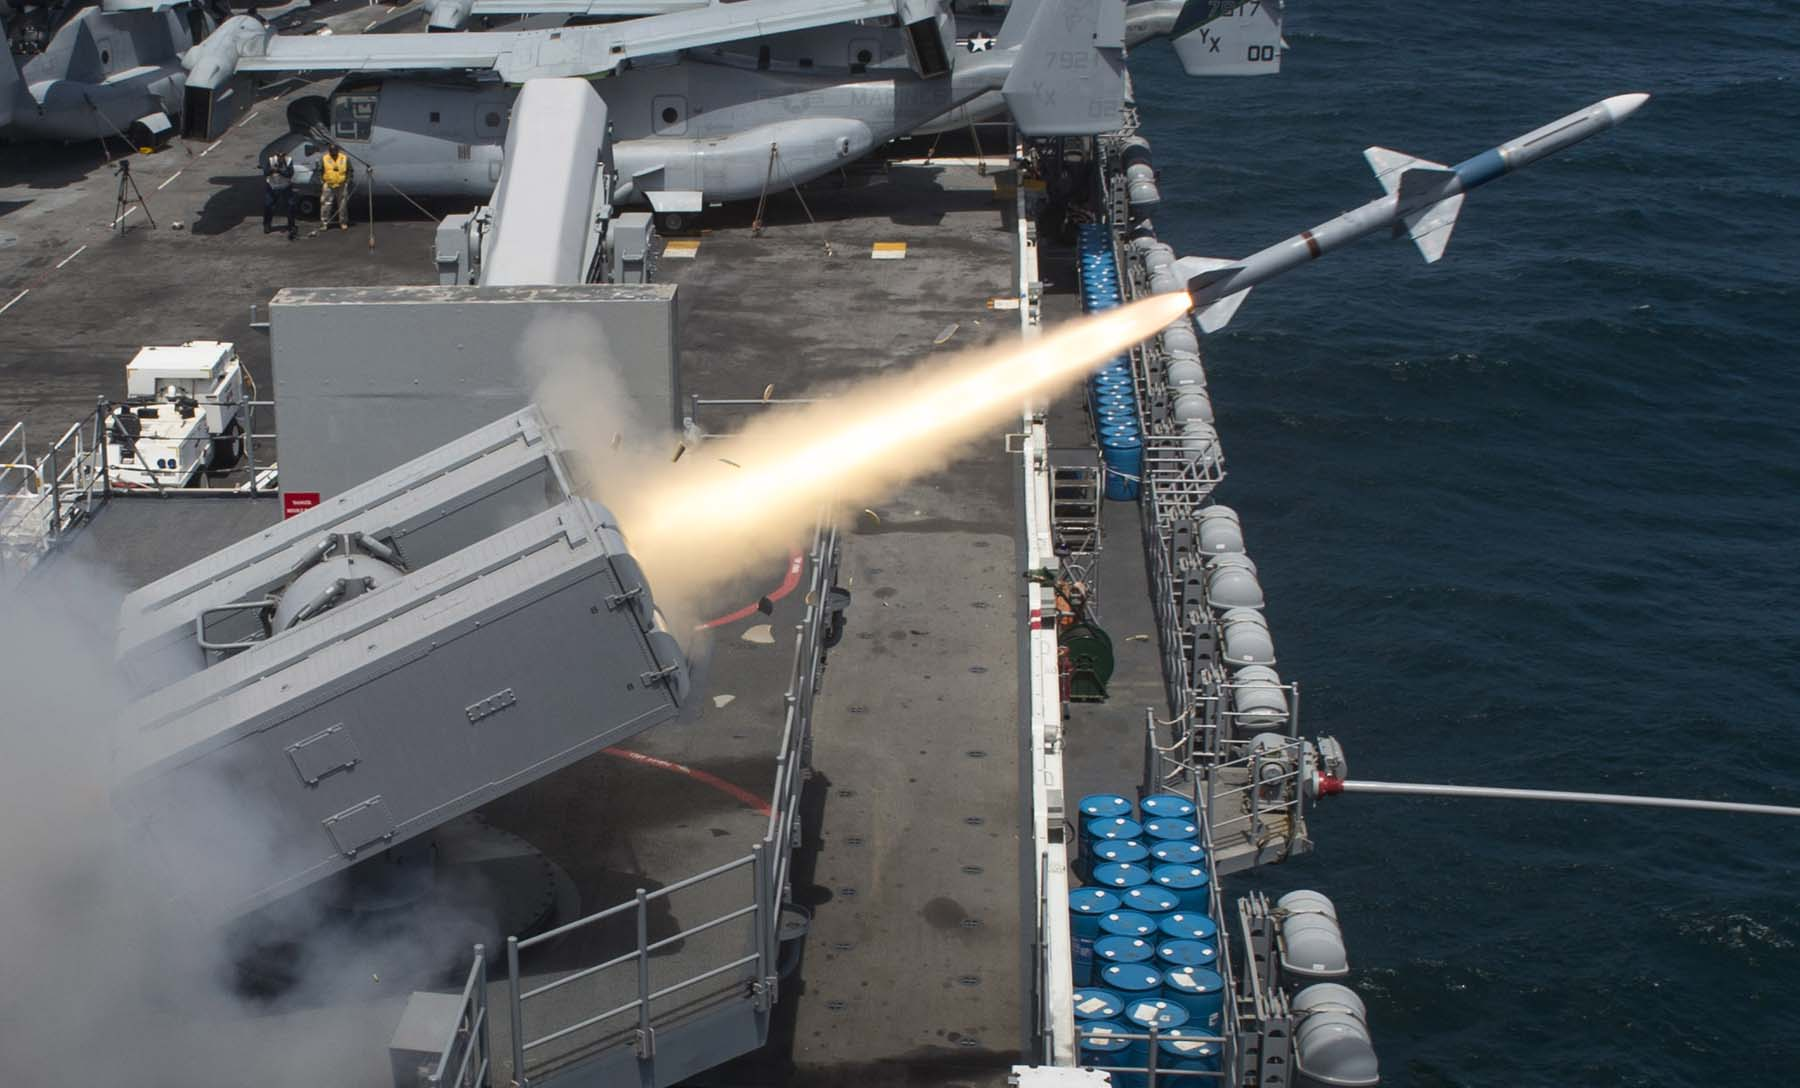 130718-N-JP249-022  PACIFIC OCEAN (July 18, 2013) A Sea Sparrow (RIM-7P) missile is launched from the amphibious assault ship USS Boxer (LHD 4) during a missile firing exercise. Boxer is underway off the coast of Southern California conducting a composite training unit exercise (COMPTUEX). COMPTUEX is a scenario-driven exercise aimed at integrating the ships of the Boxer Amphibious Ready Group through a series of live training events. (U.S. Navy photo by Mass Communications Specialist 2nd Class Kenan O'Connor/Released)